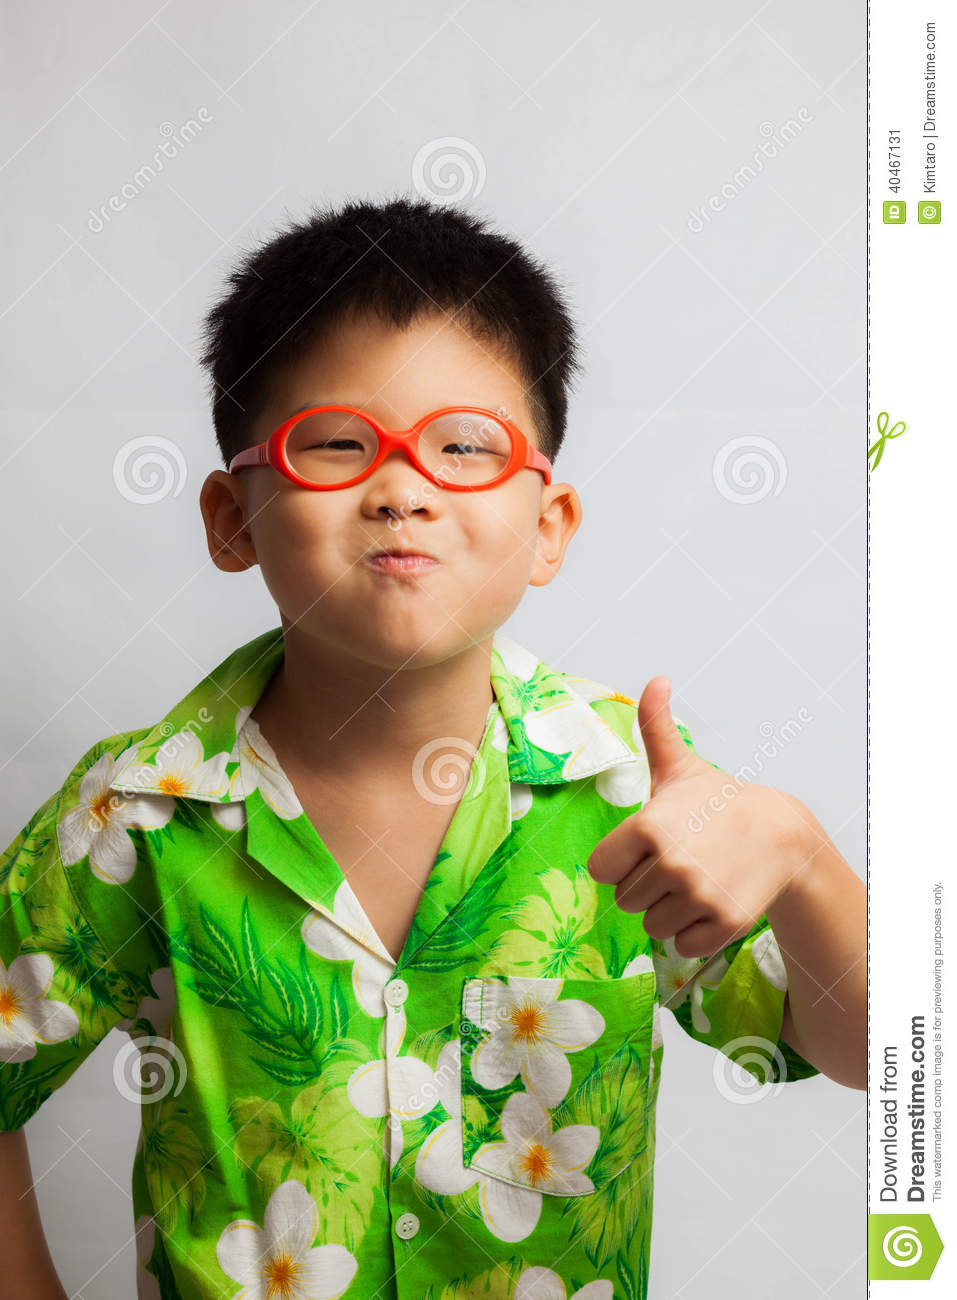 Asian Little Boy Feeling Happy Stock Photo - Image: 40467131 Giggle Clipart